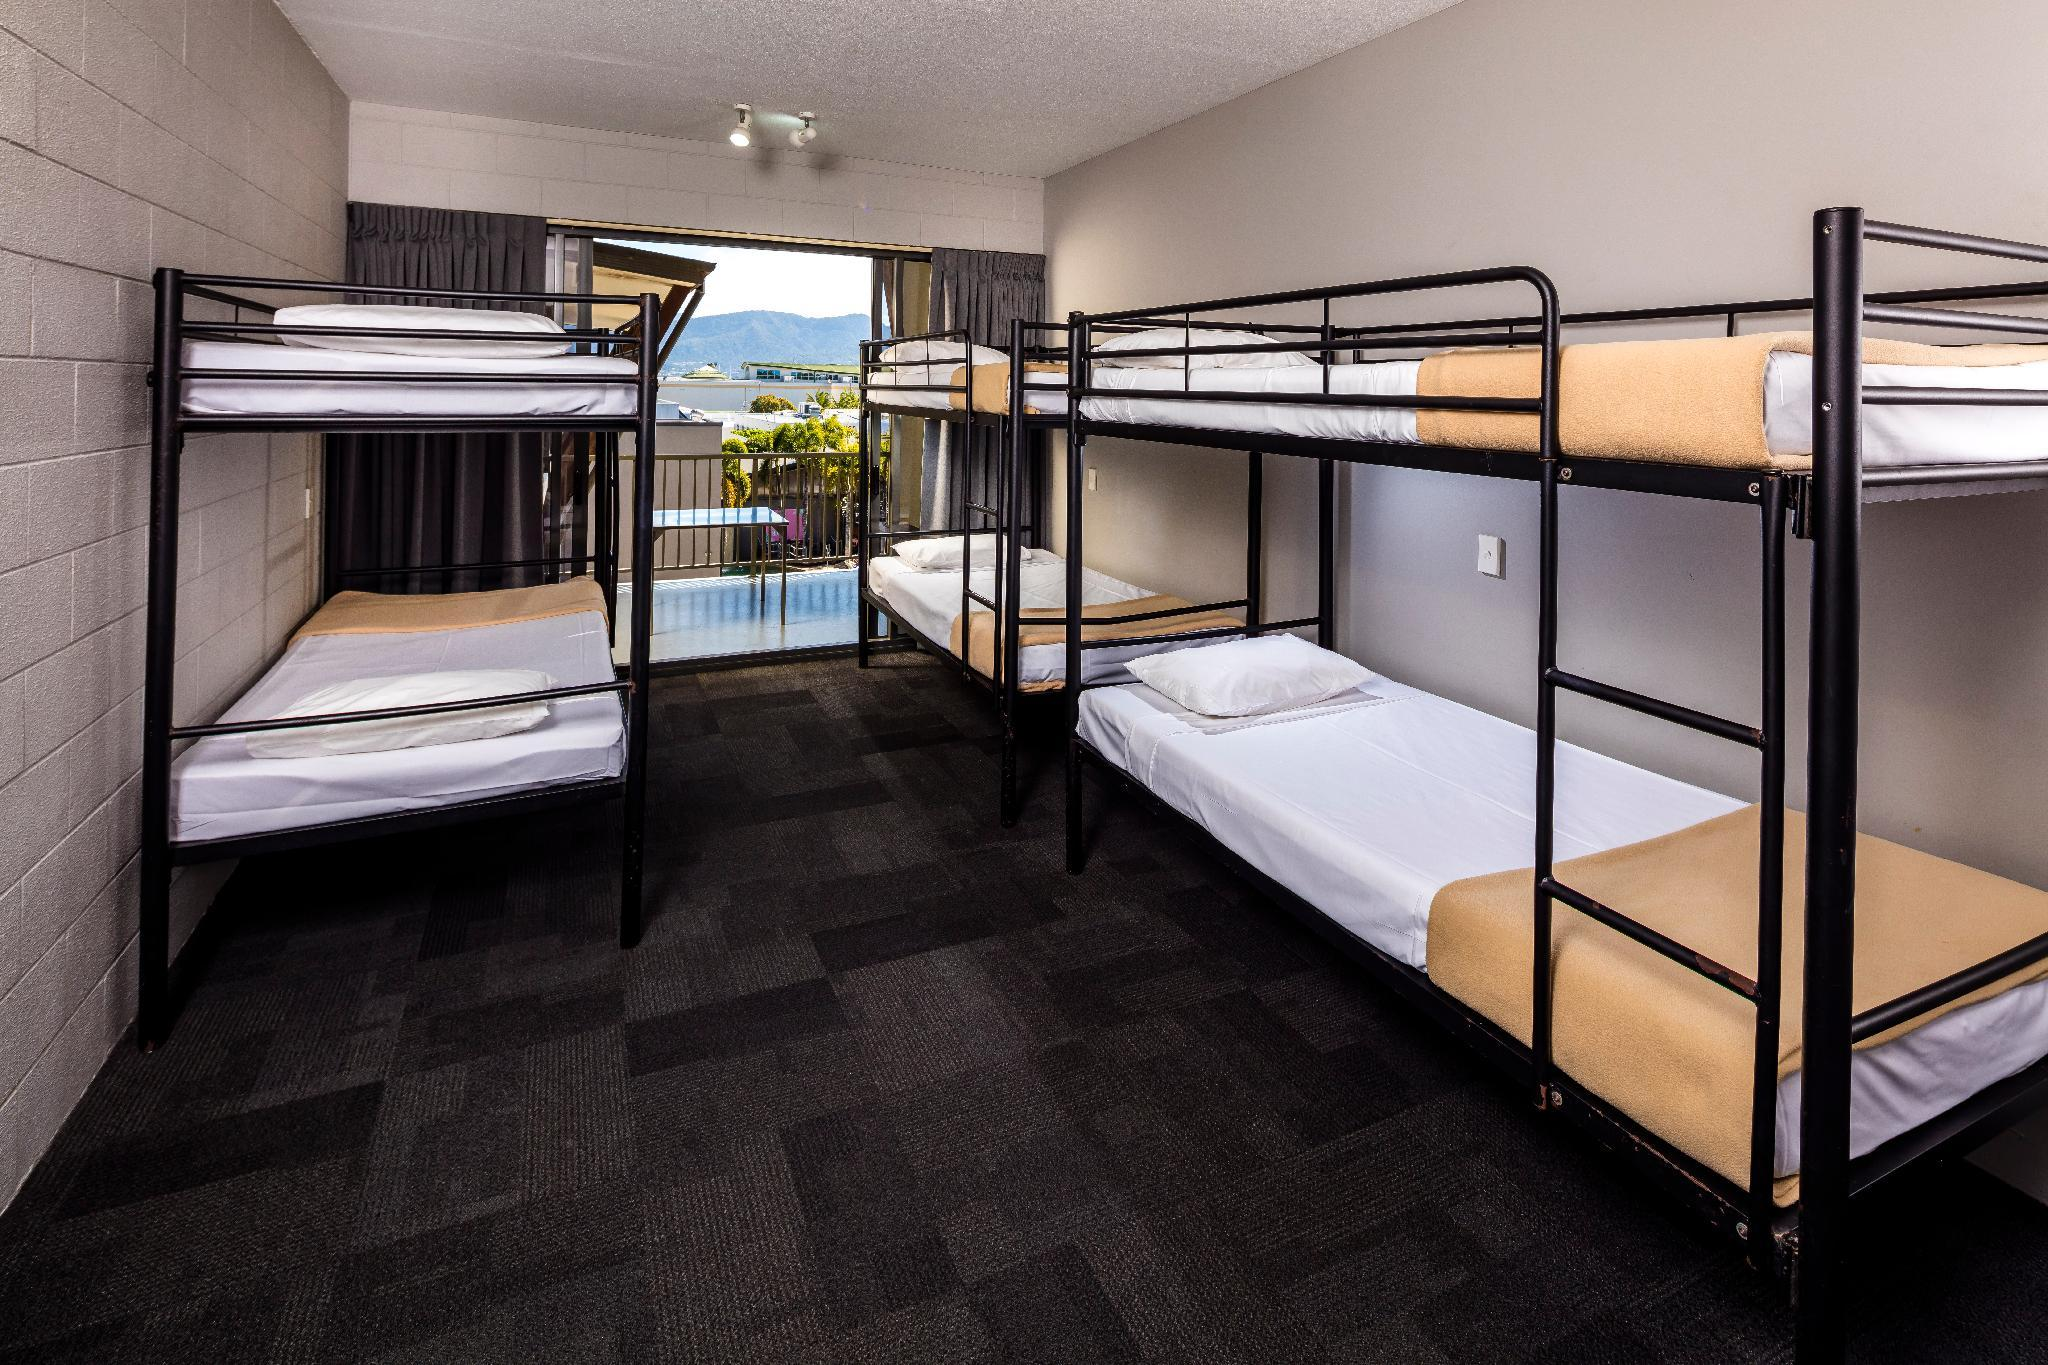 1 Person in 6-Bed Dormitory with En-Suite - Mixed